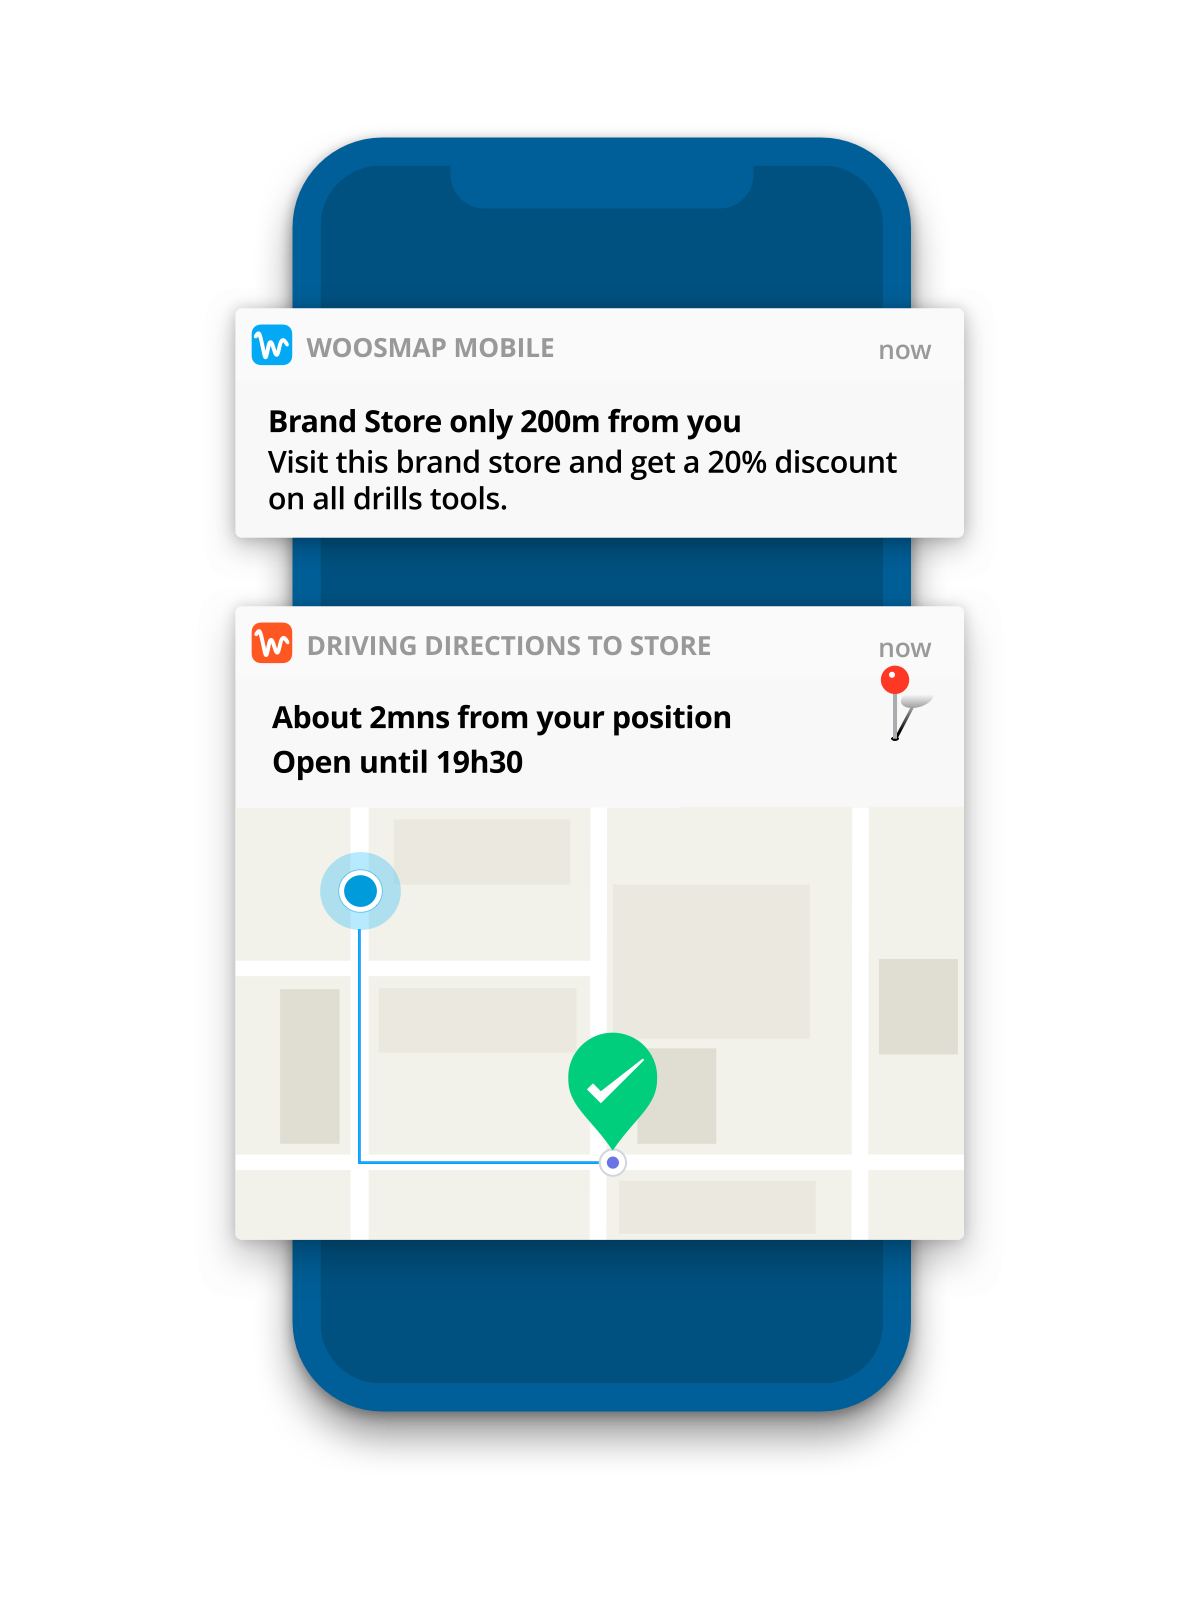 Personalize with User Location